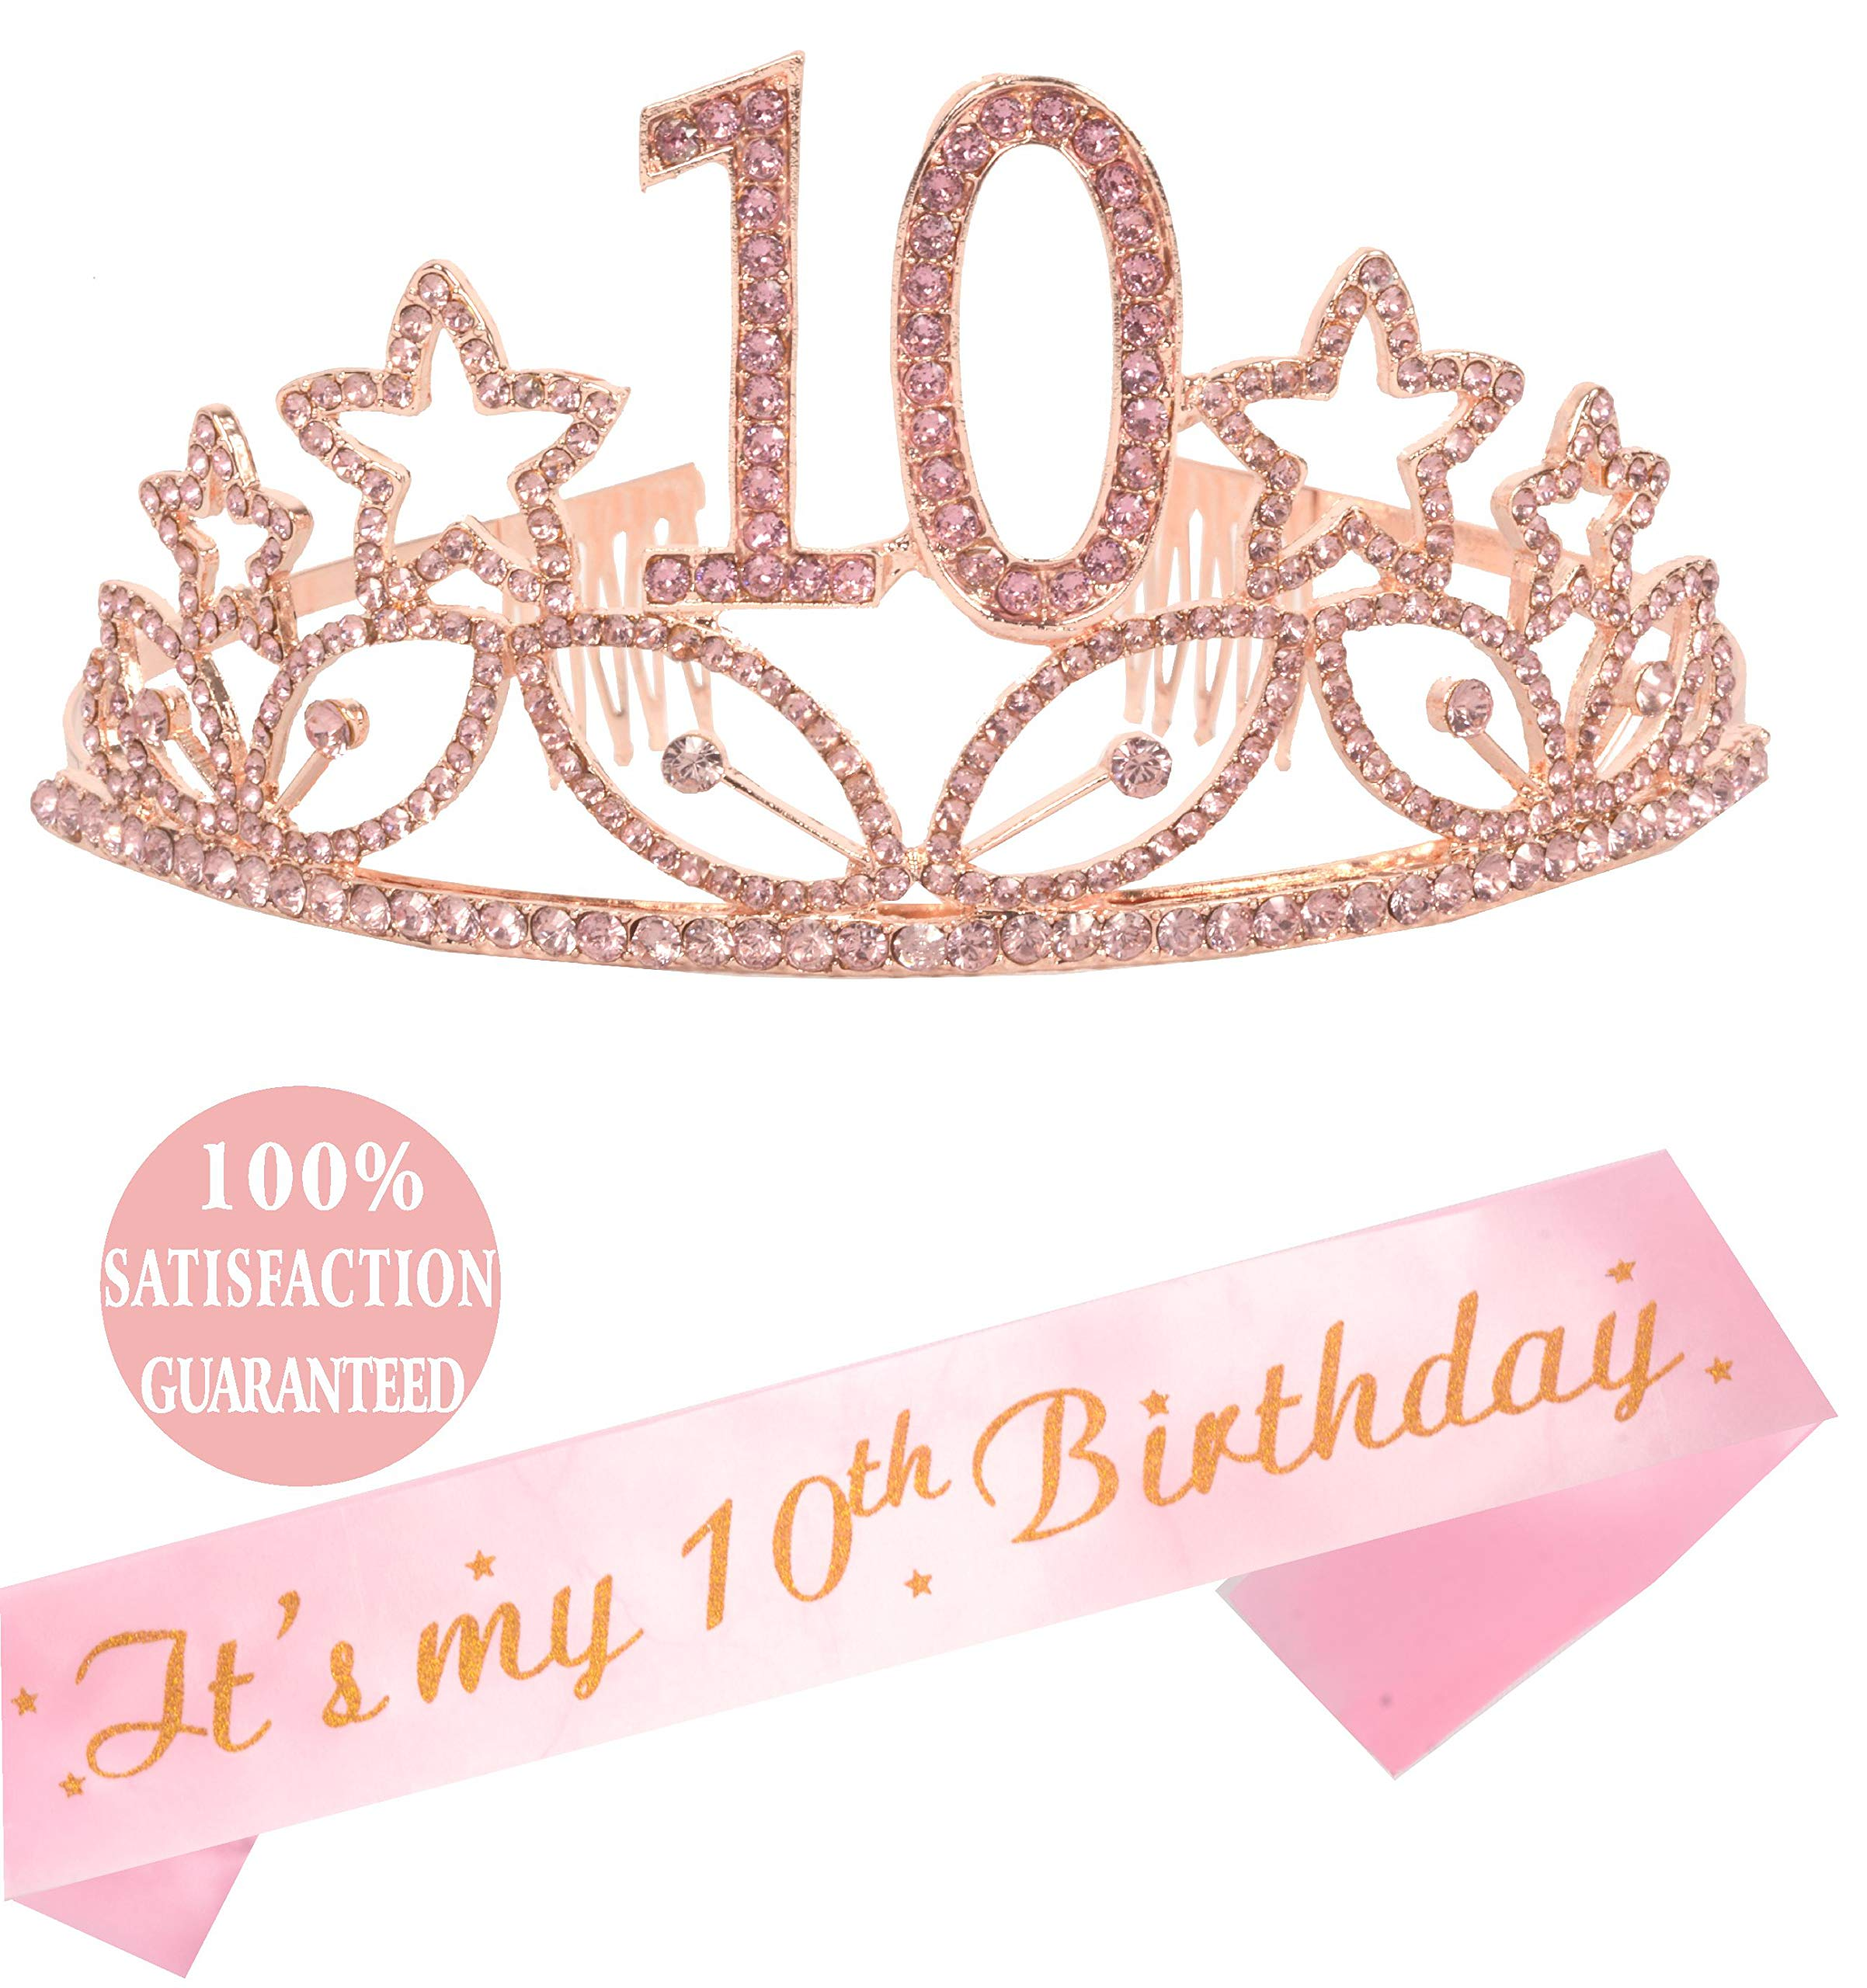 10th Birthday Tiara and Sash Pink, Happy 10th Birthday Party Supplies, It's My 10th Birthday and Crystal Tiara Birthday Crown for 10th Birthday Party Supplies and Decorations (Star) (Pink)...